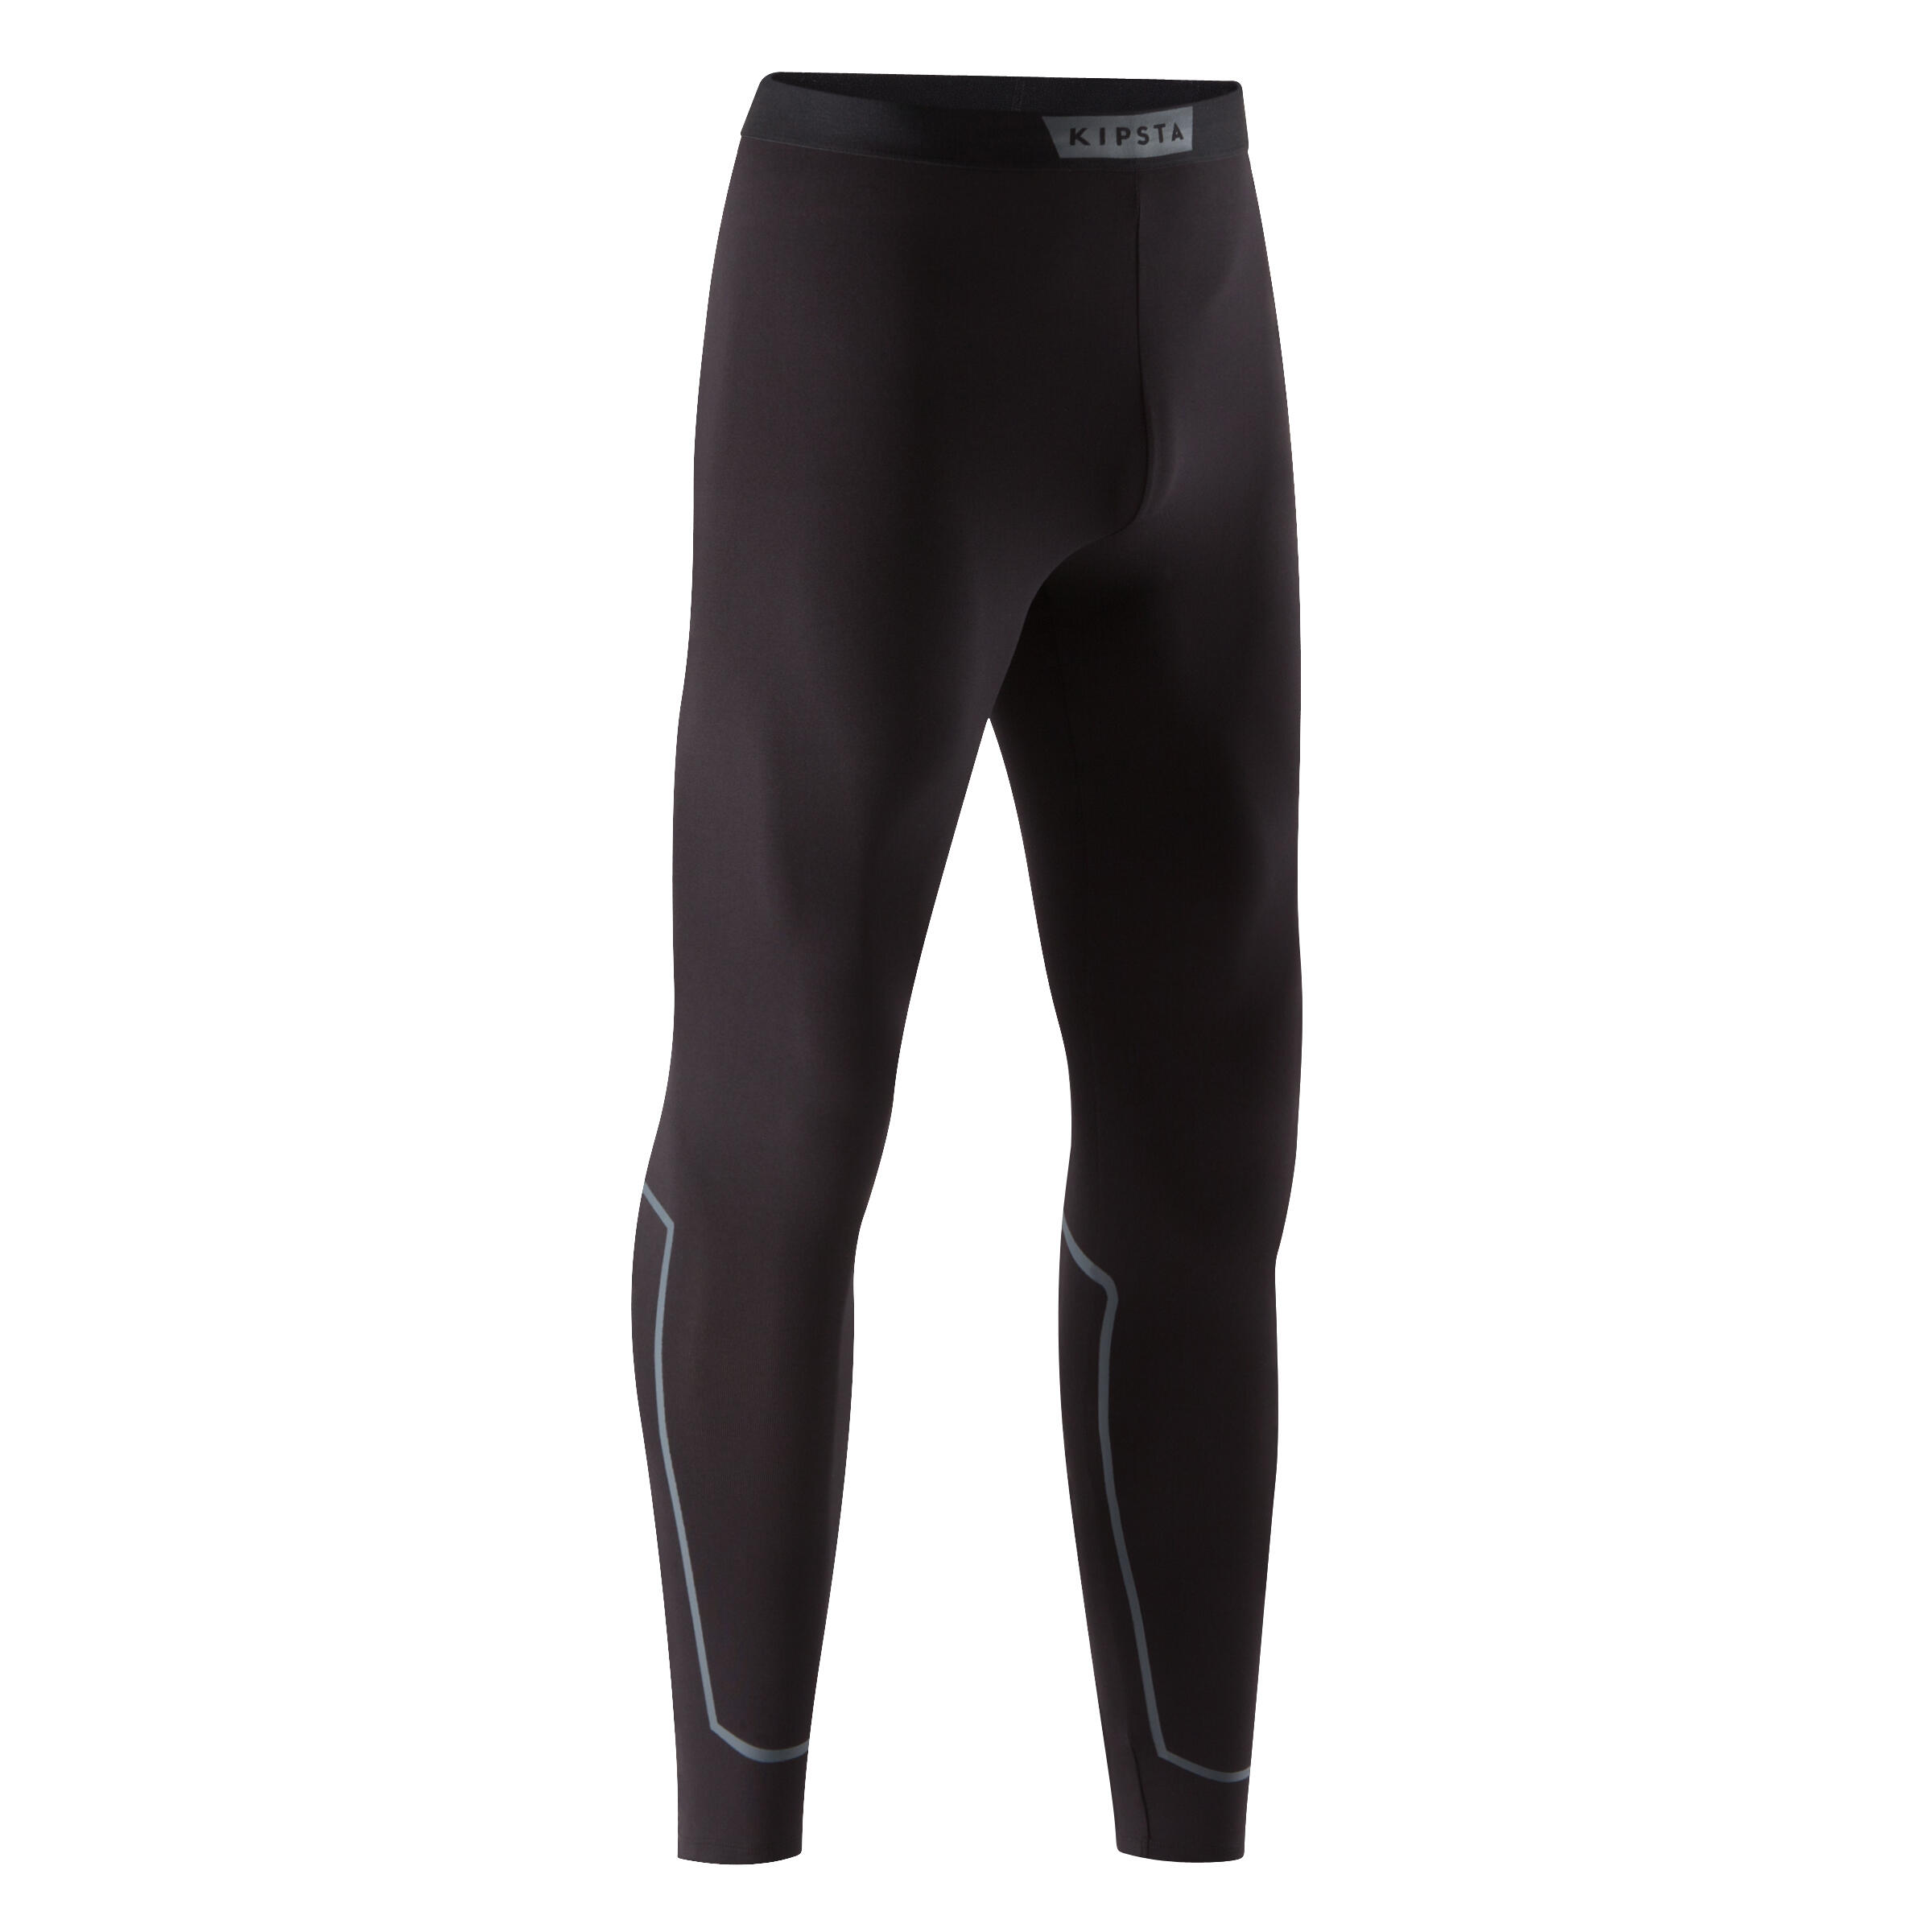 Keepdry 100 Adult Breathable Tights - Black with Calf Highlight